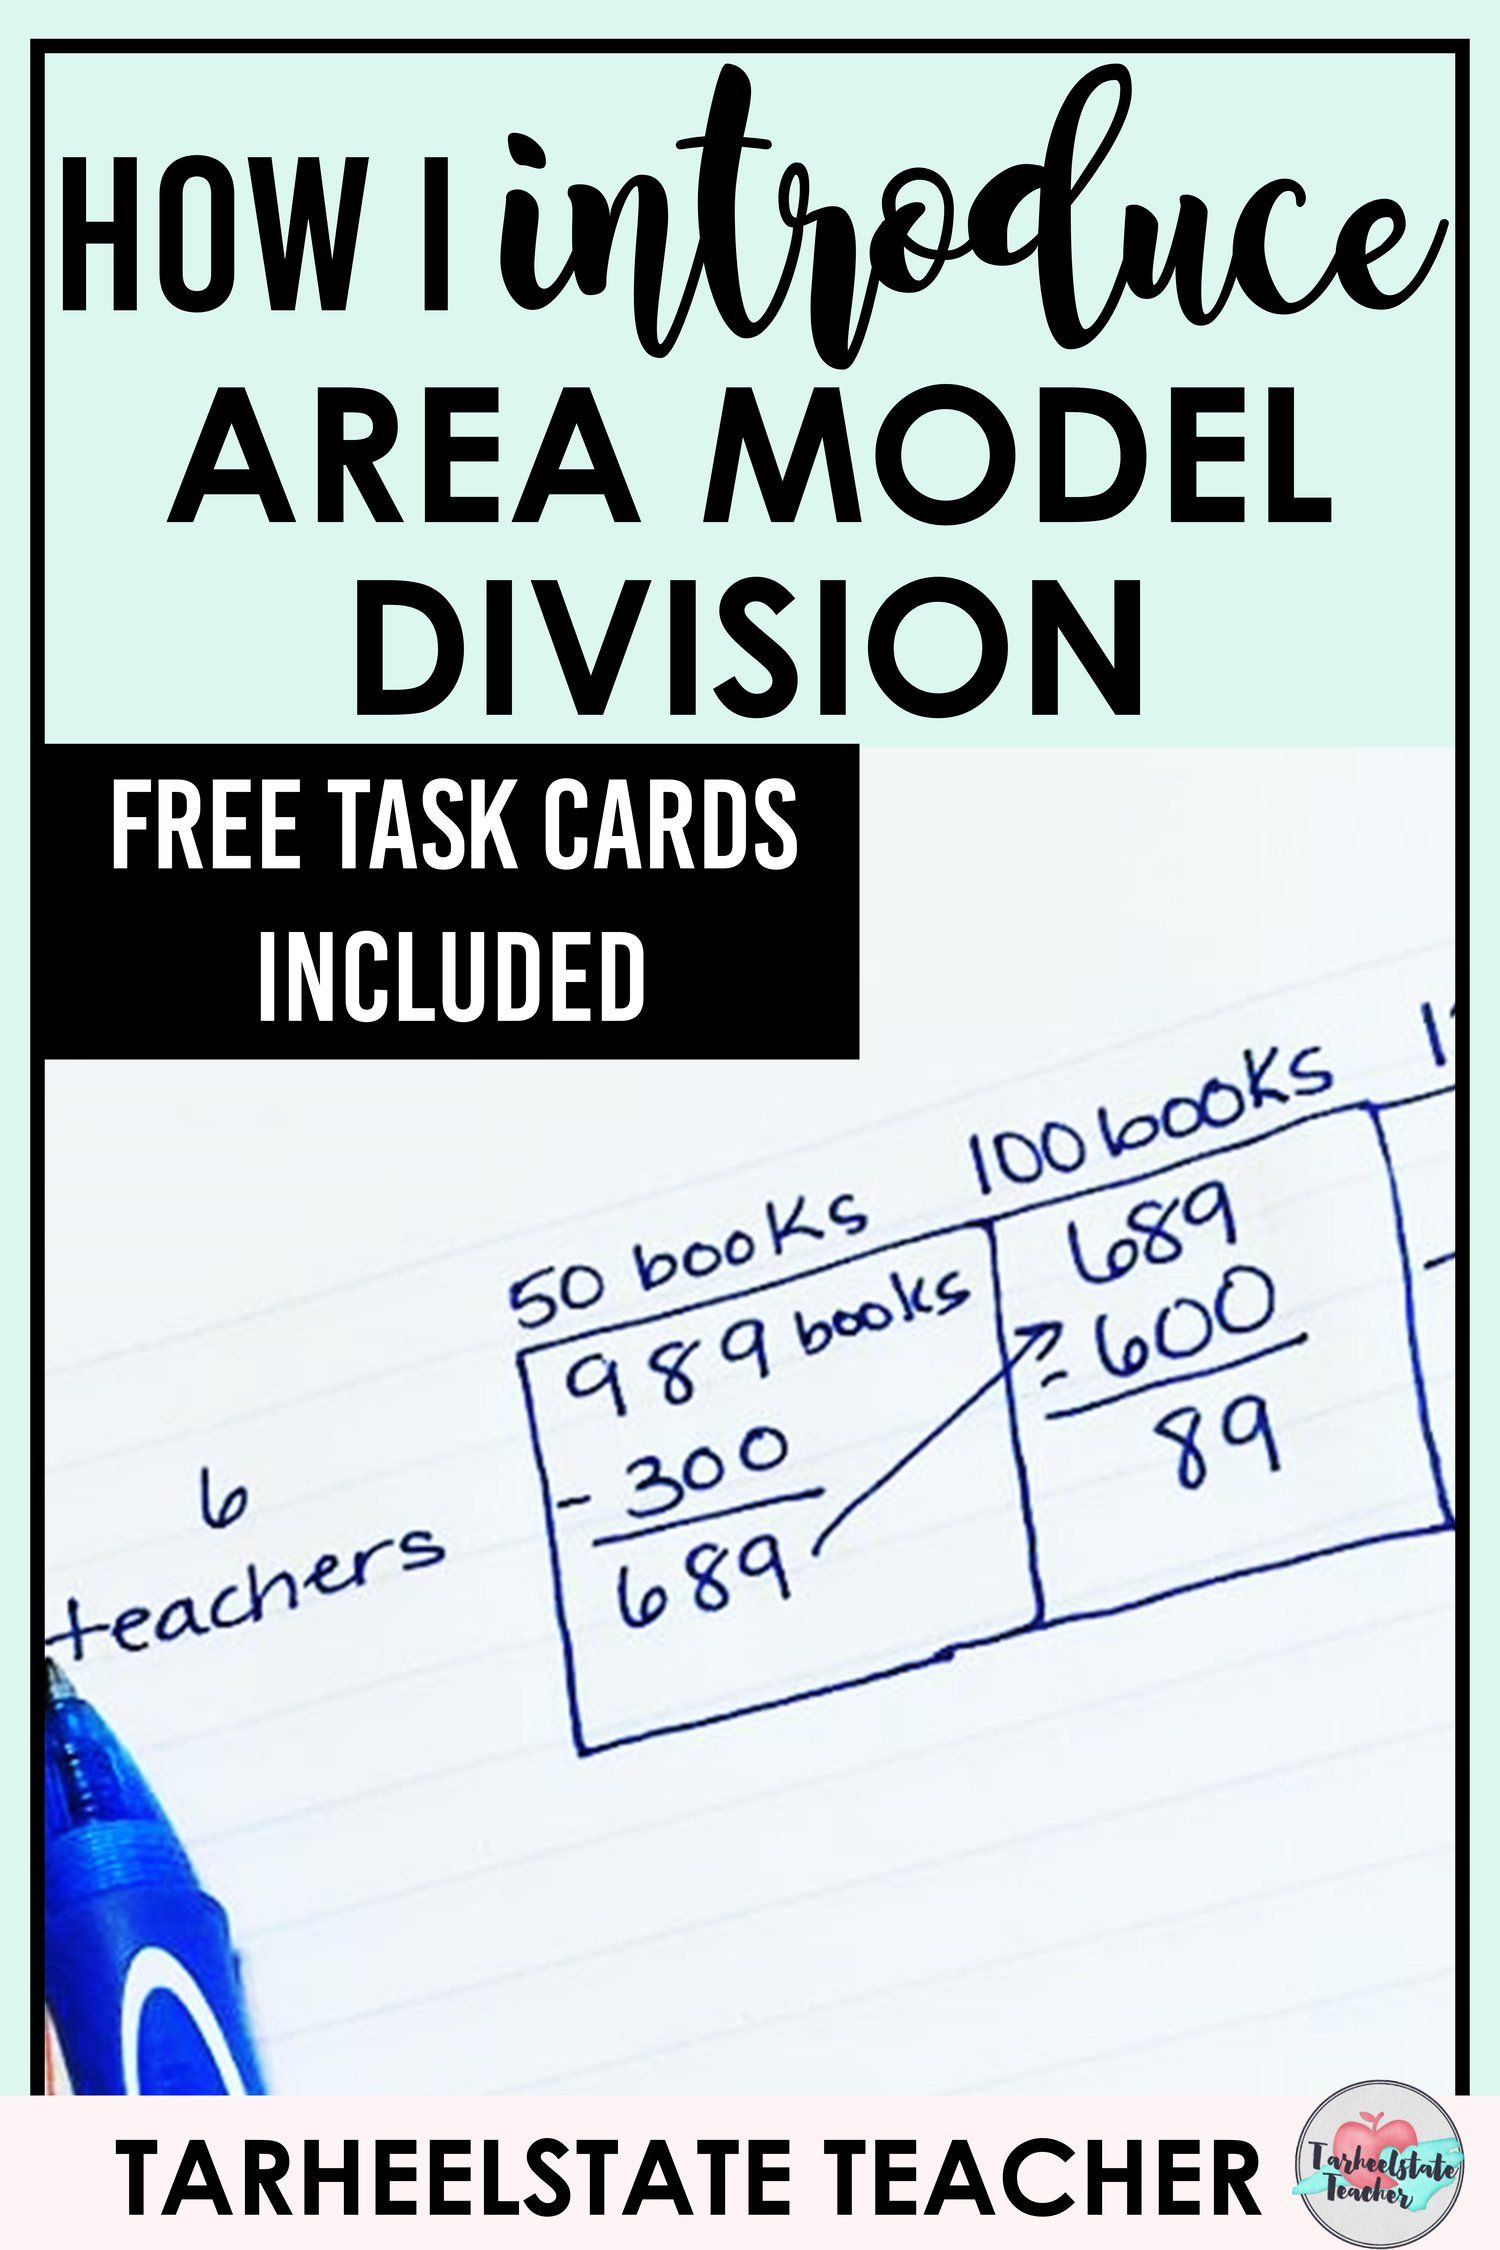 How To Teach Area Model Division